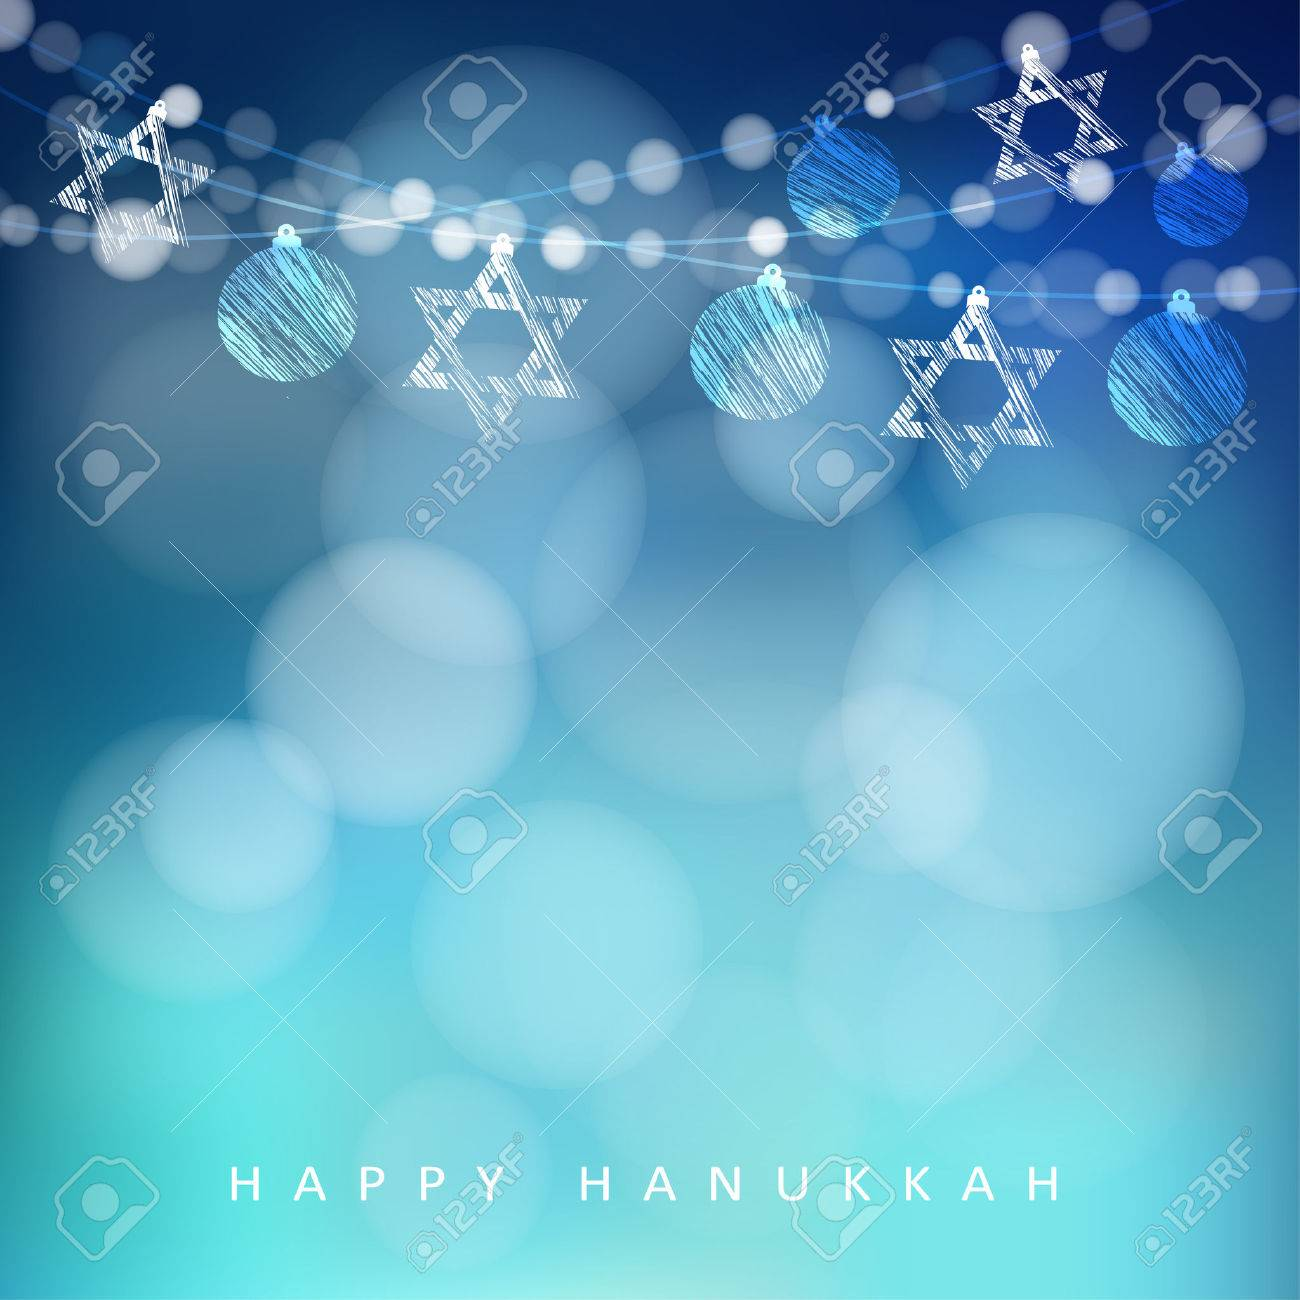 Jewish holiday Hannukah greeting card with garland of lights and jewish stars, vector illustration background - 48281915